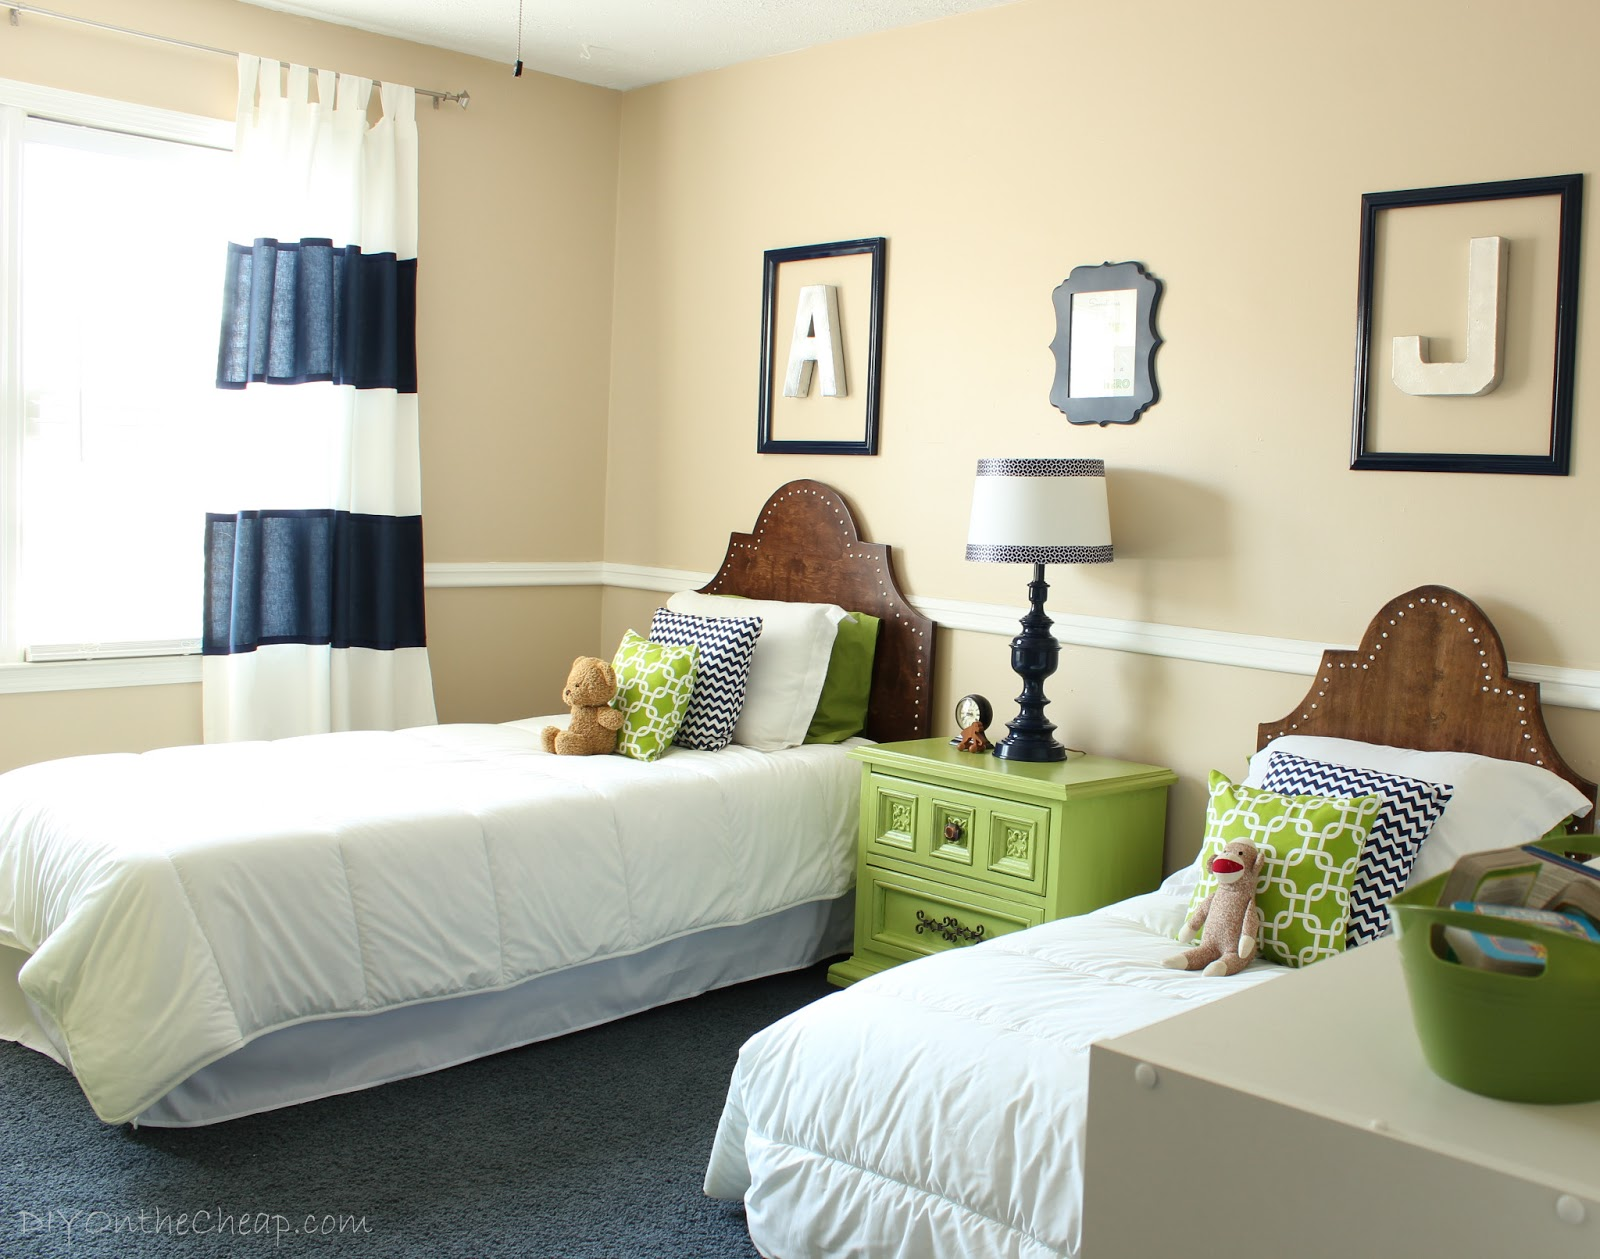 Big Boy Room Transformation Reveal - Erin Spain on Bedroom Ideas For Guys  id=45038